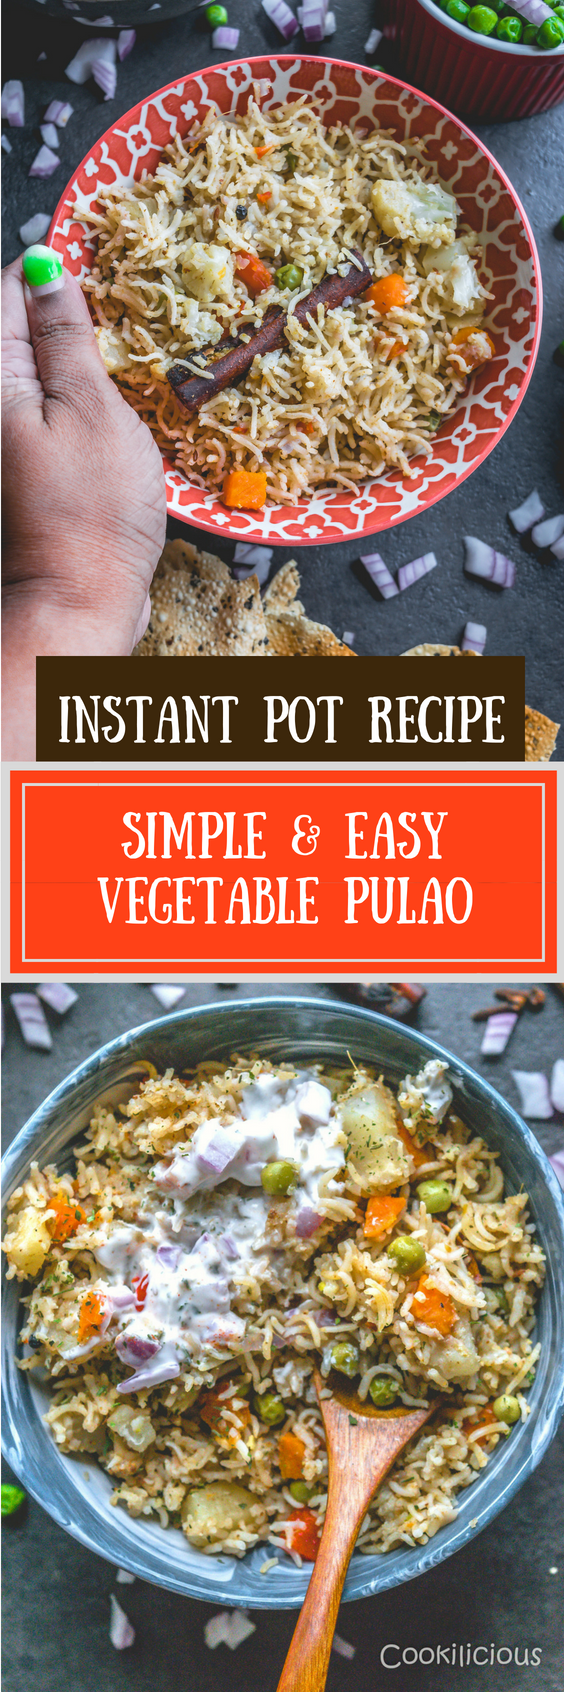 Simple & Easy Vegan Vegetable Pulao in an Instant PotFlavors Of Rice